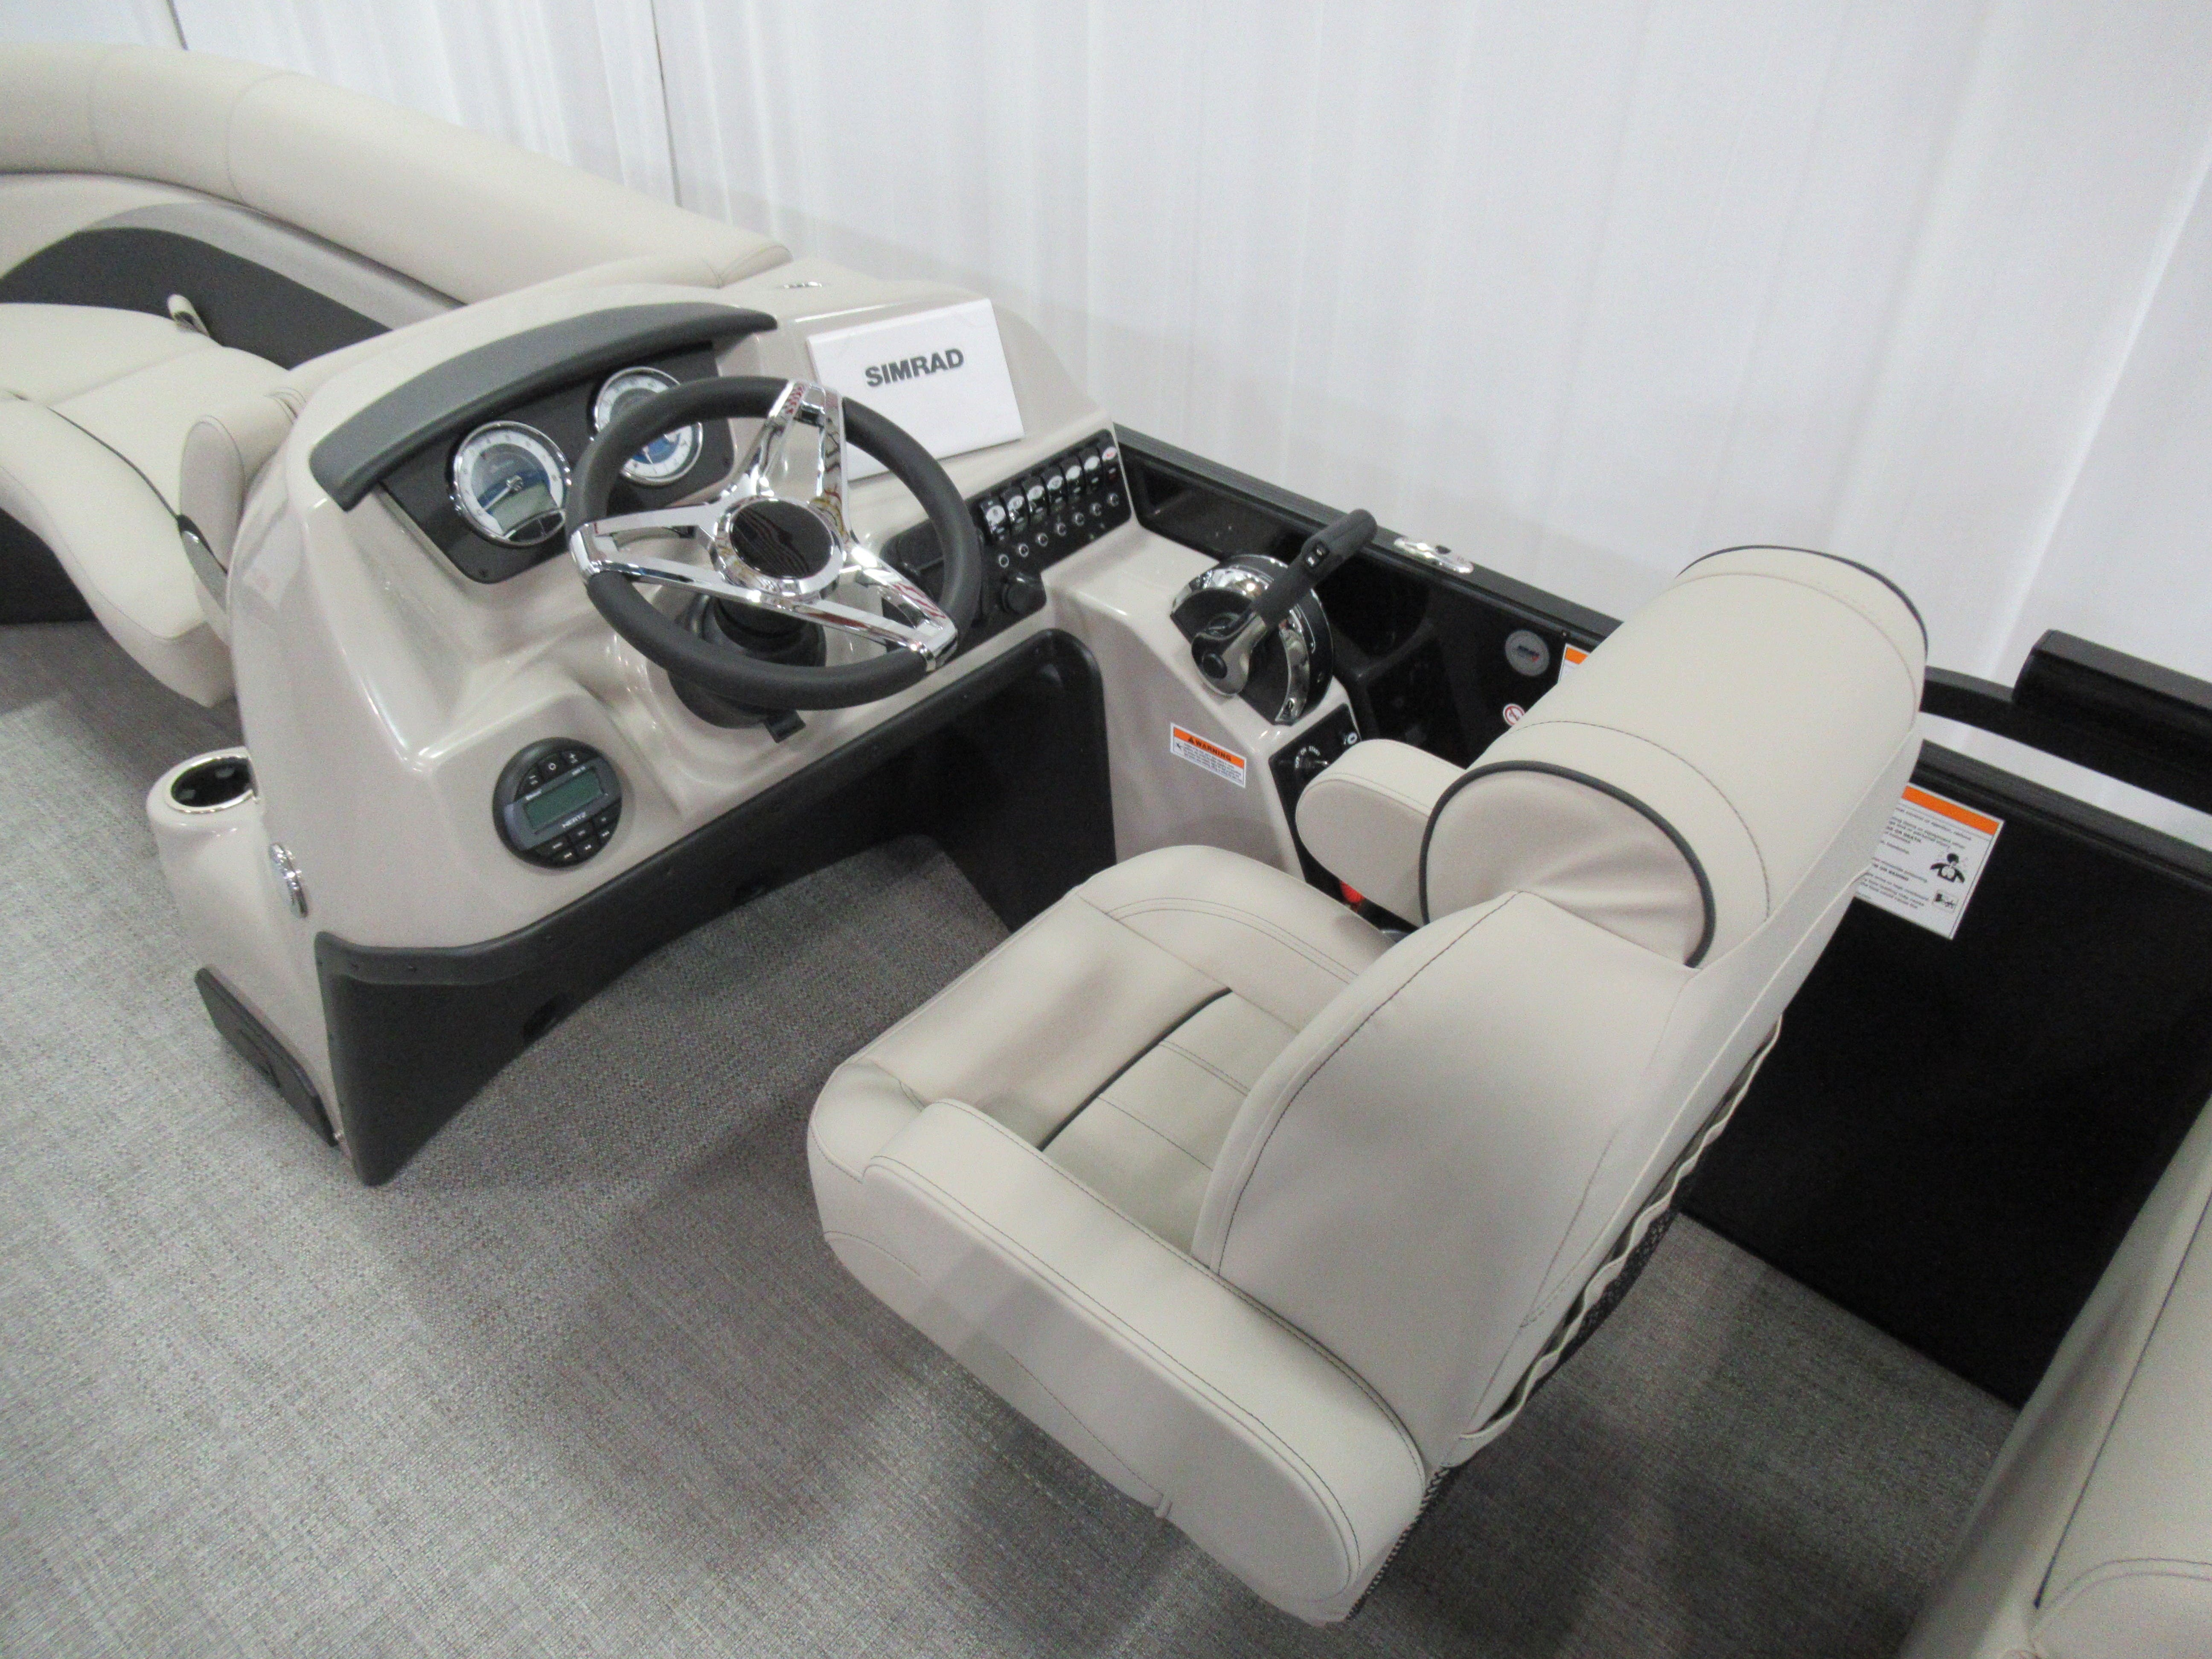 2021 Barletta boat for sale, model of the boat is C22qc & Image # 7 of 11